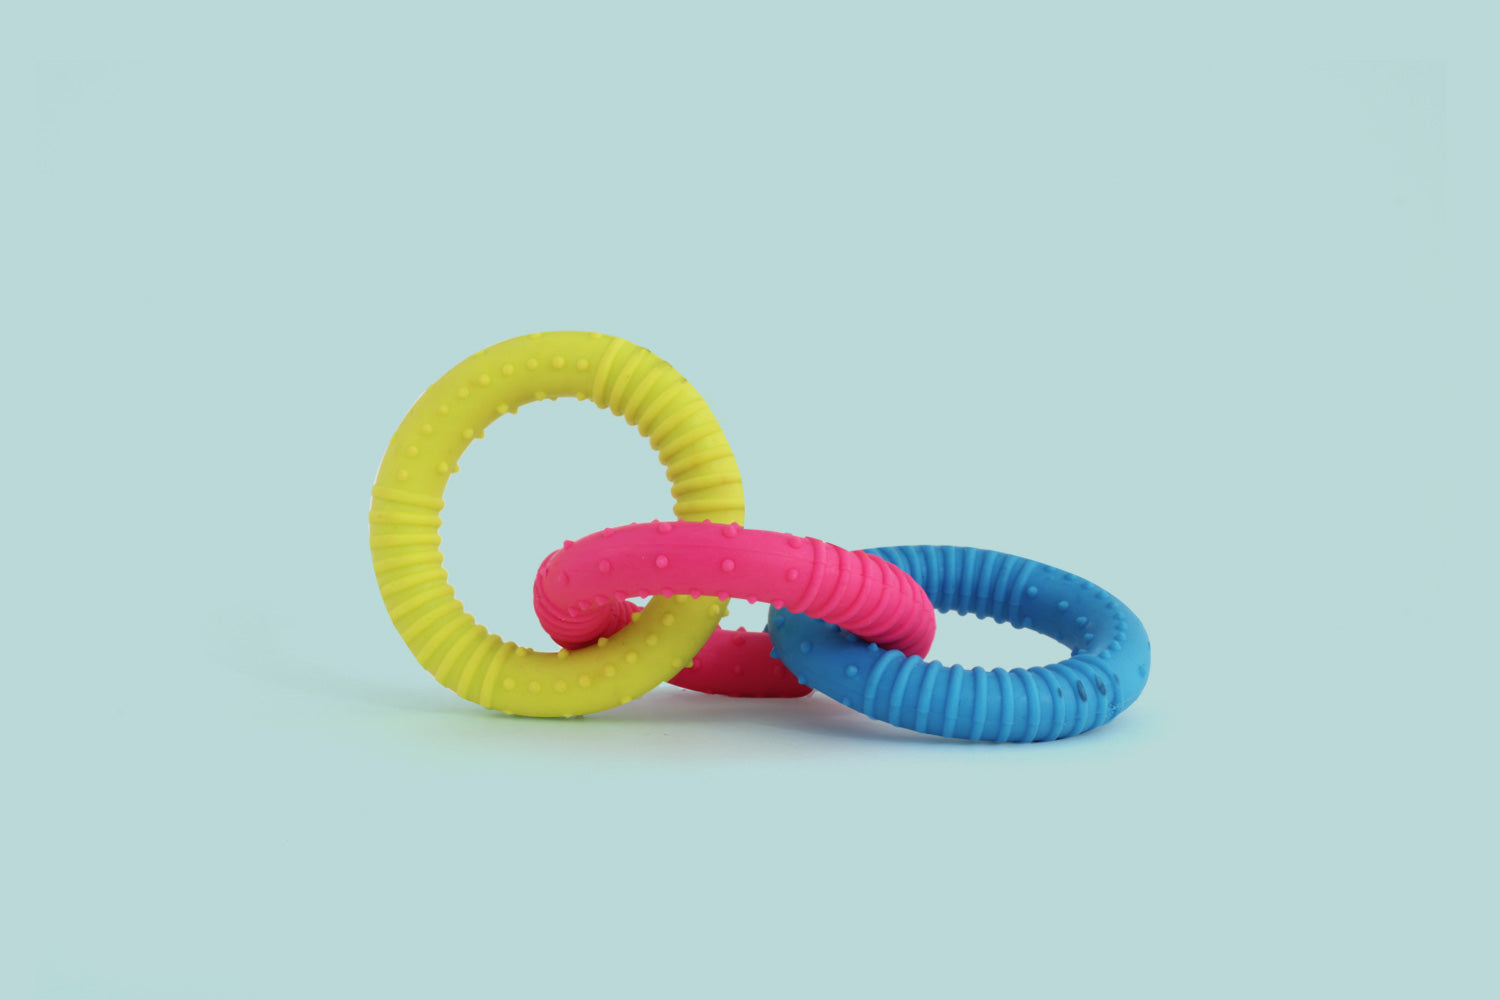 Three Rings Rubber Toy